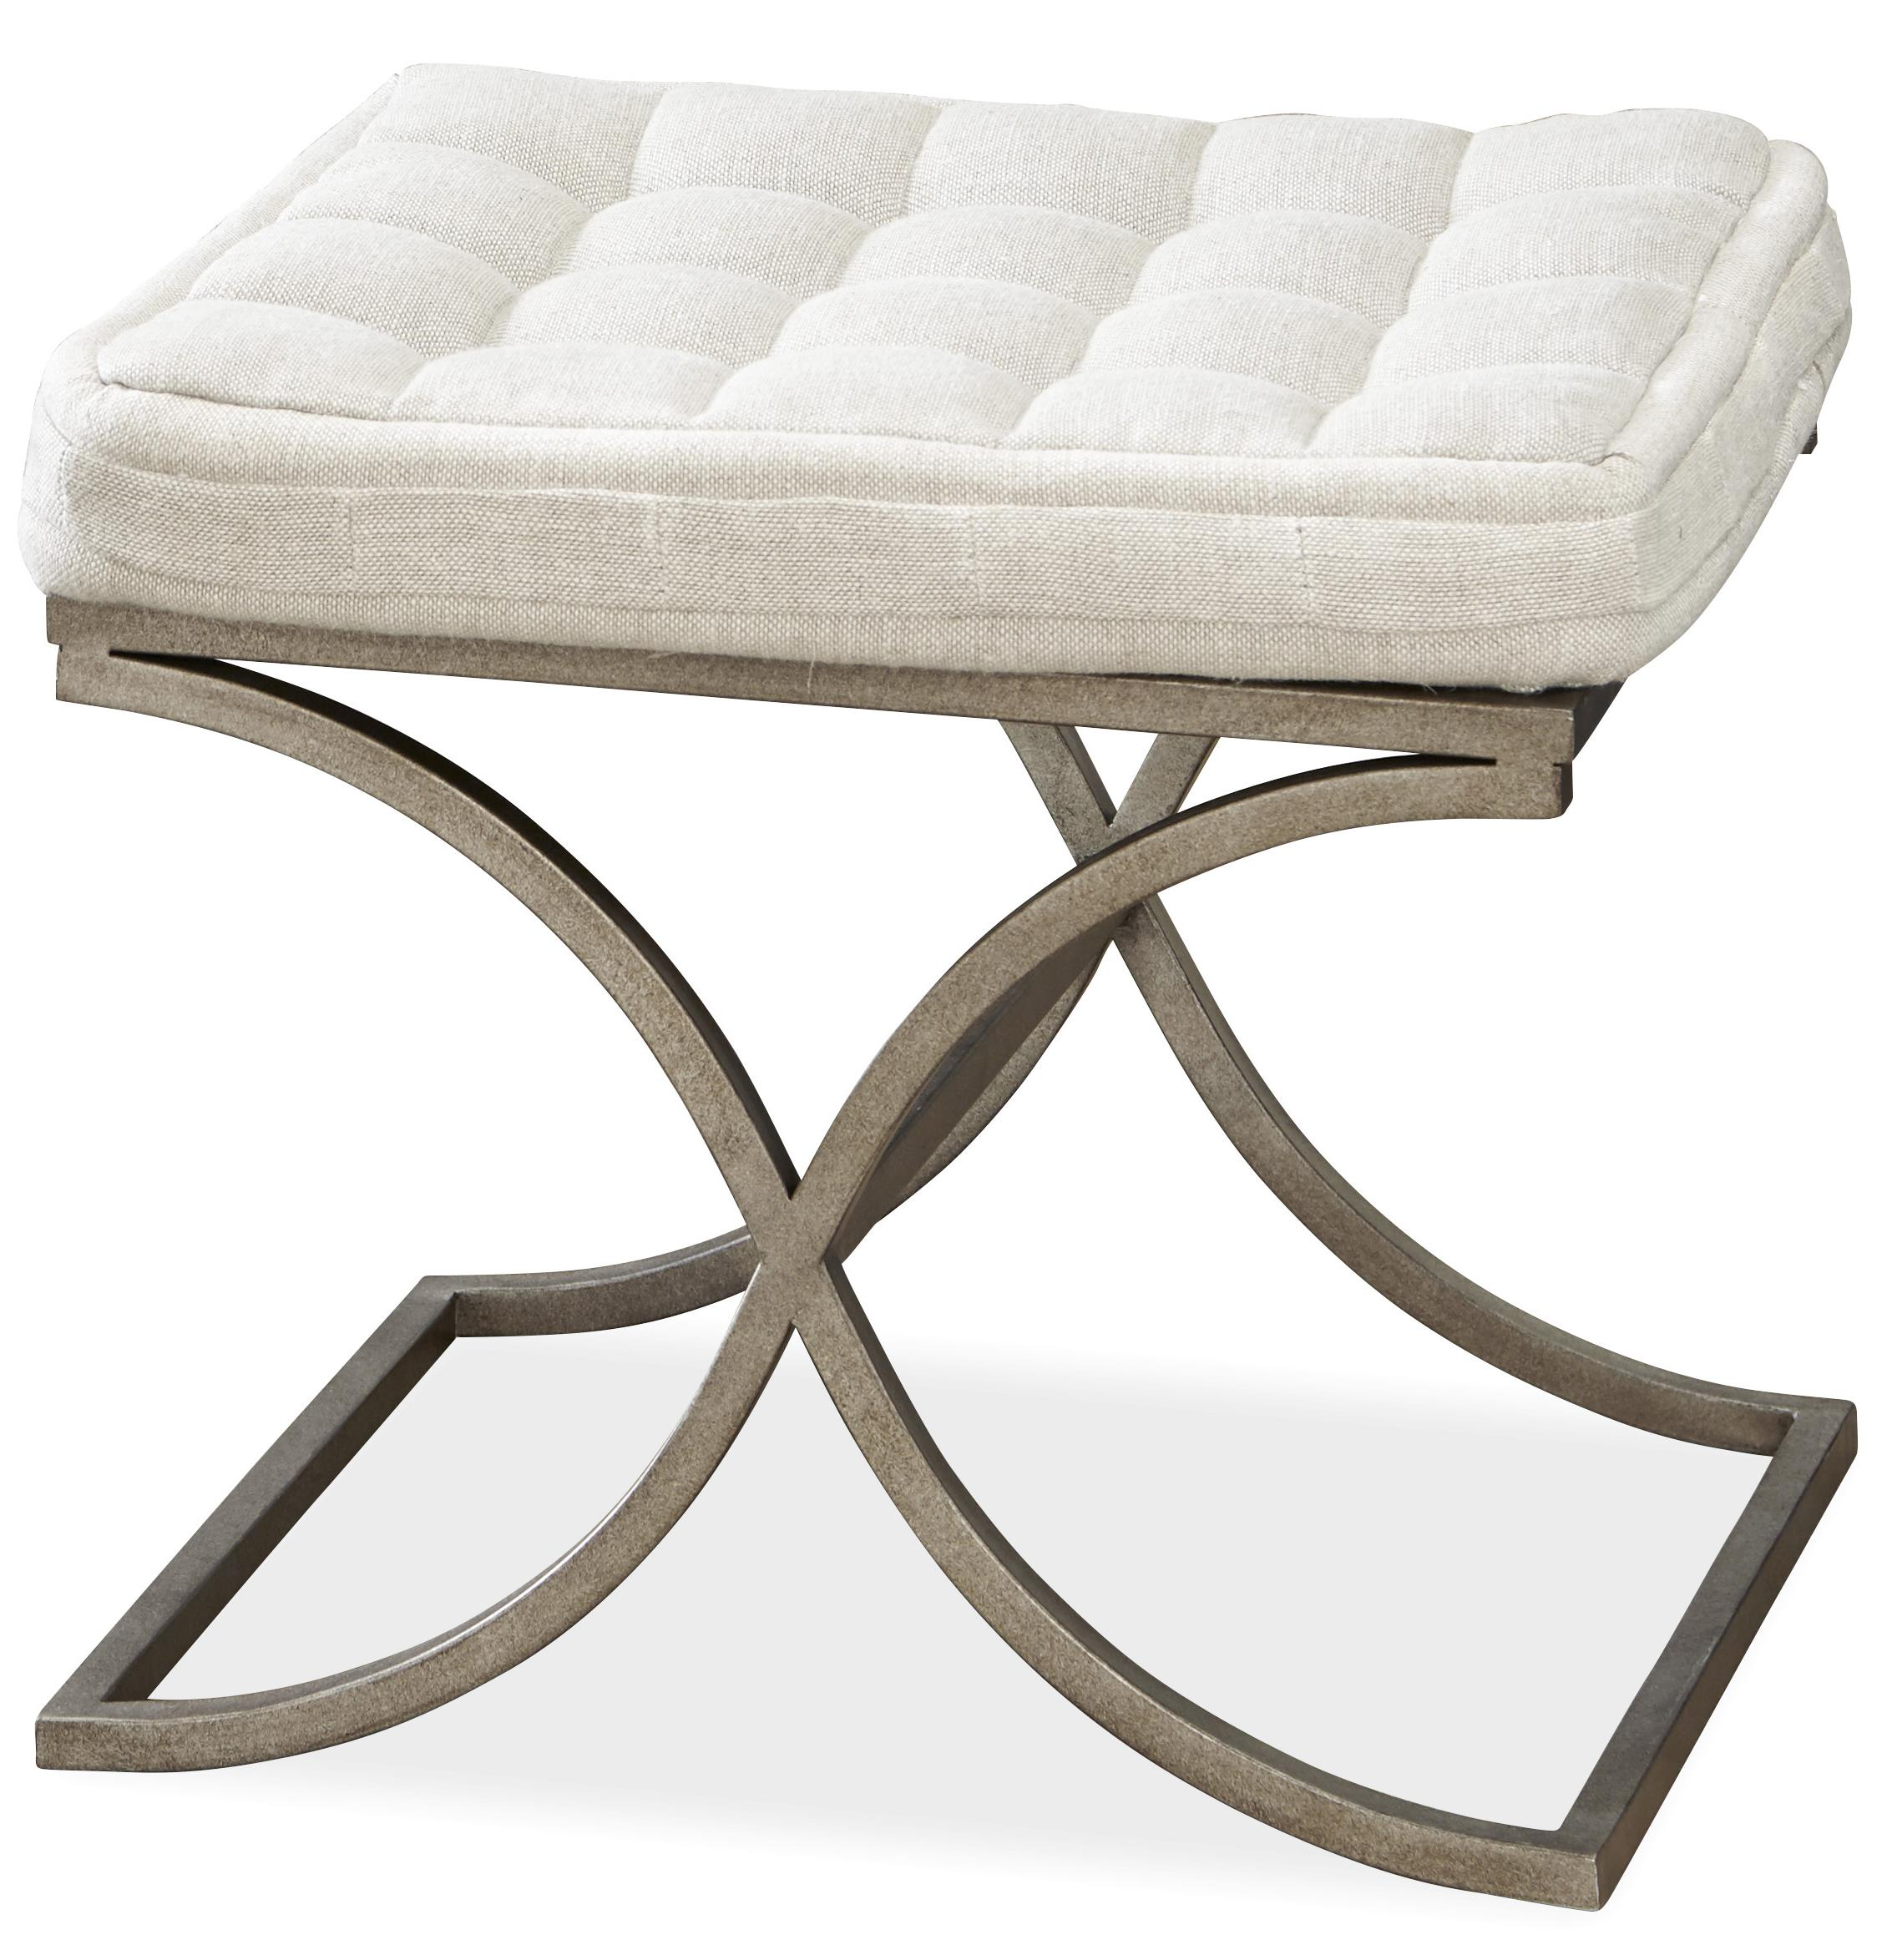 Universal Moderne Muse Bed End Bench - Item Number: 414380